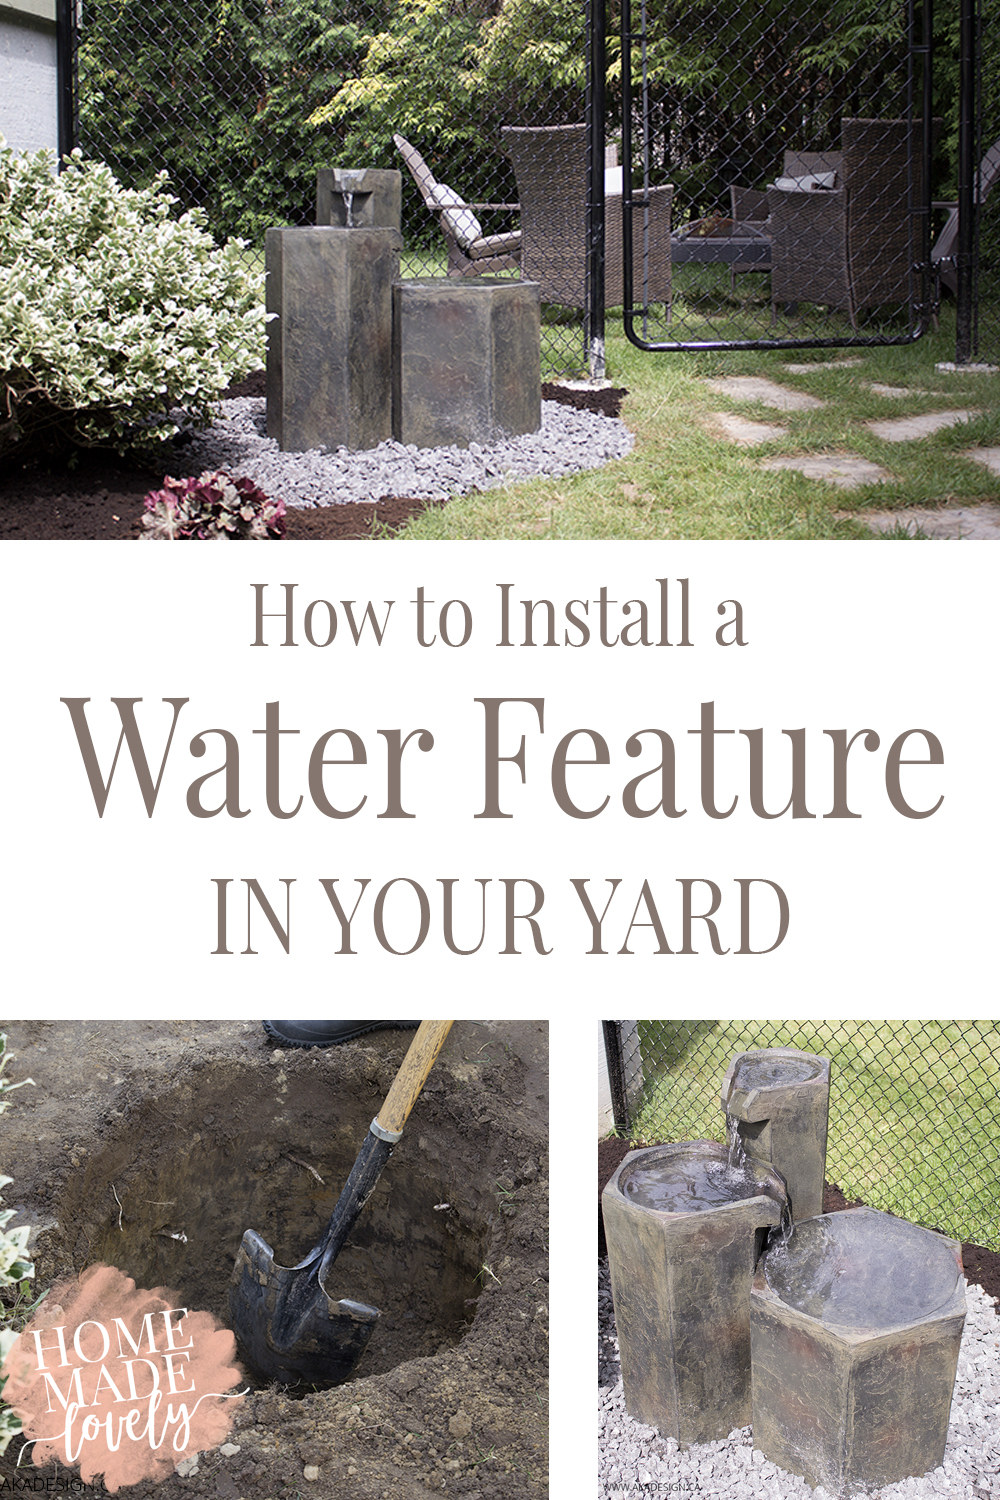 If you love water and want to add a little fountain to your yard, here's how to install a water feature. Complete with step-by-step photos and instructions!